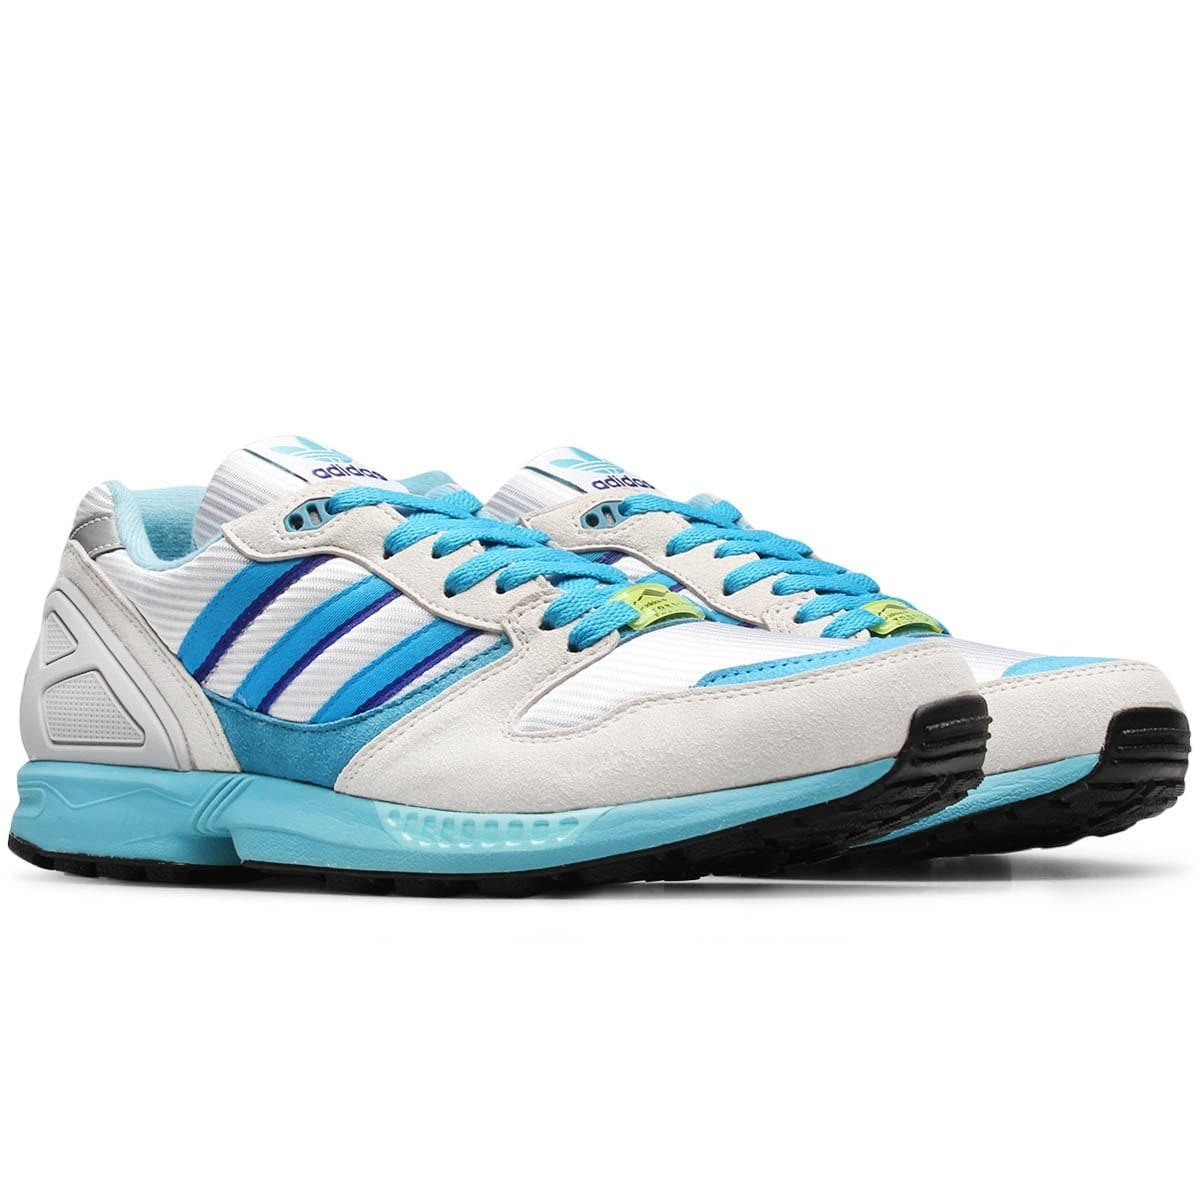 ZX 5000 30 Years of Torsion WhiteBlue – Bodega